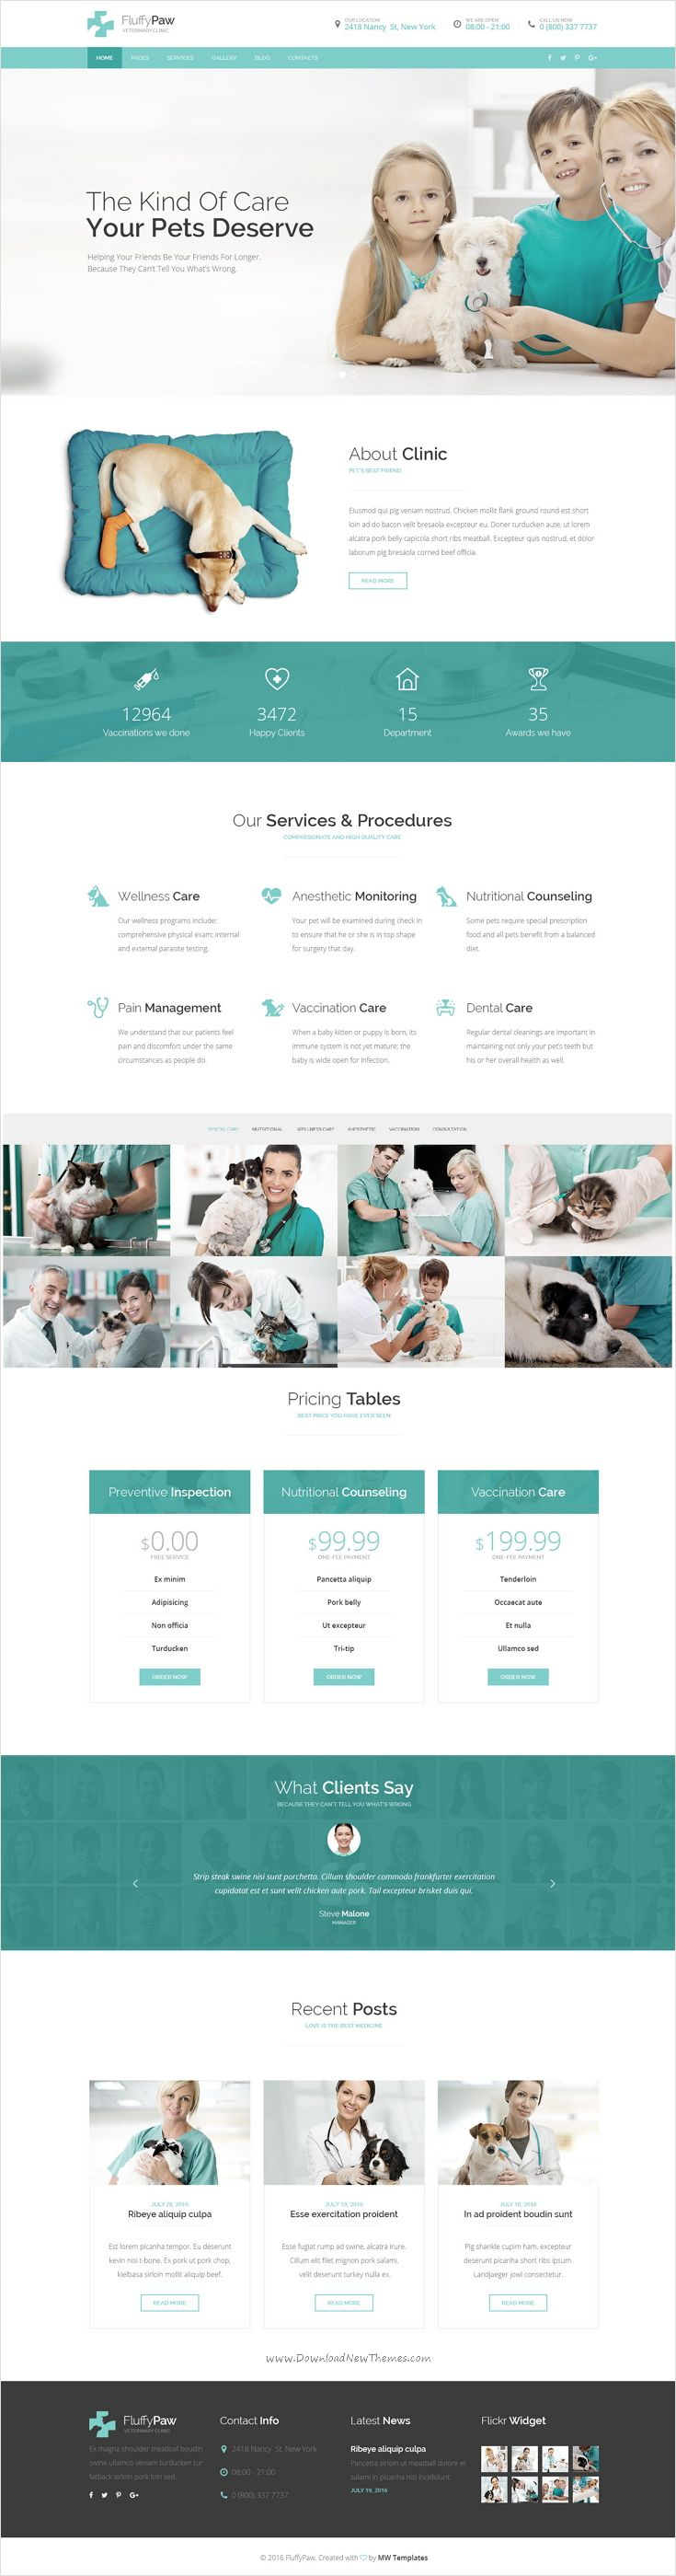 FluffyPaw is modern design #PSD template for #veterinary and #petcare clinic website download now➩ https://themeforest.net/item/fluffypaw-modern-pet-care-and-veterinary-psd-template/17375639?ref=Datasata